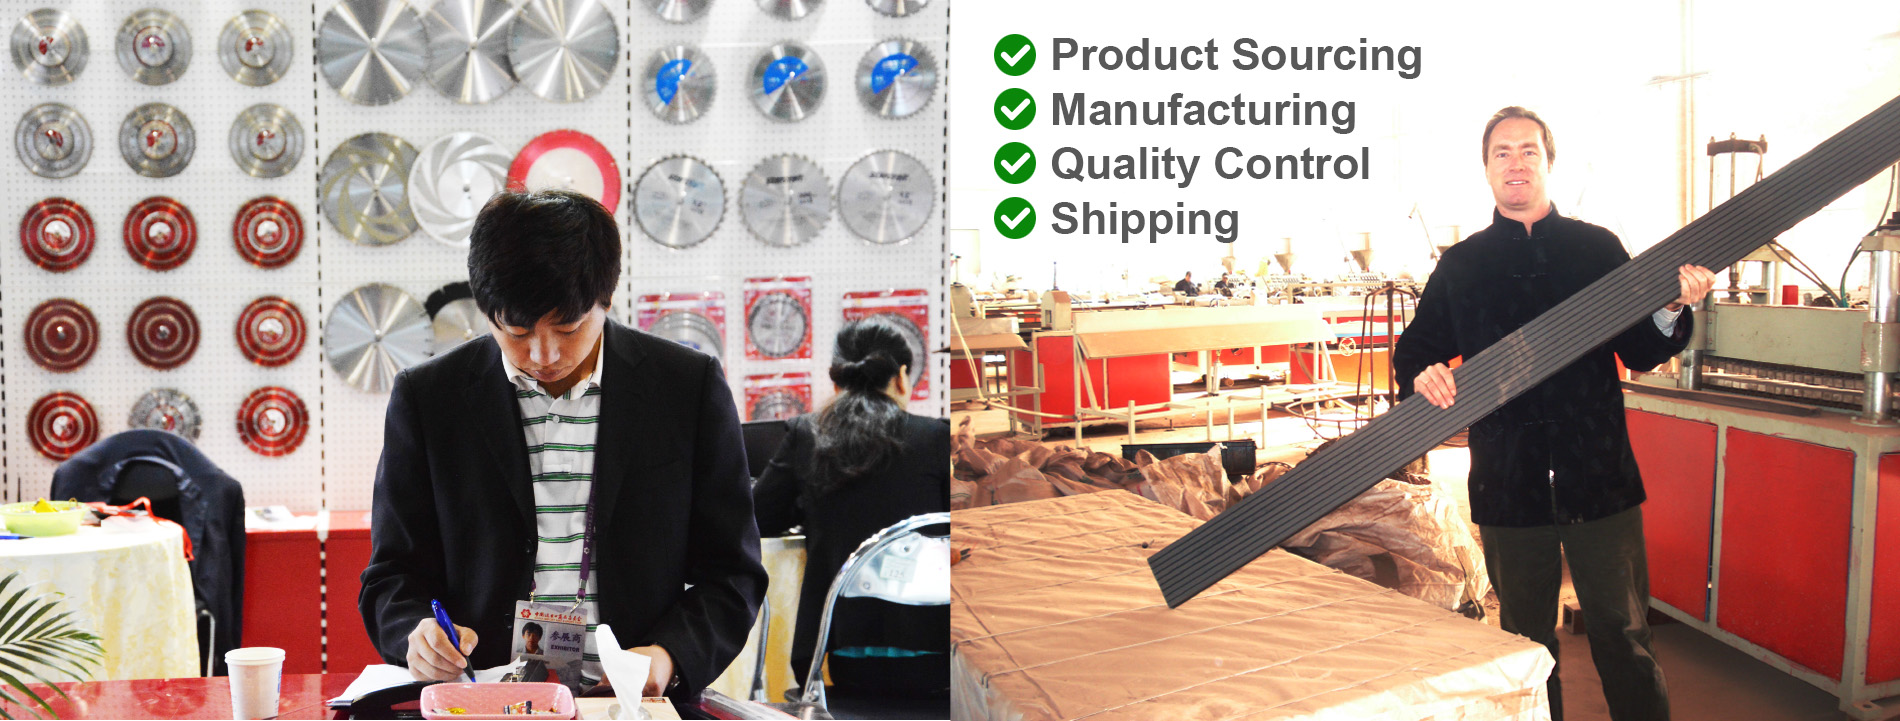 Product Sourcing | Manufacturing | Quality Control | Shipping